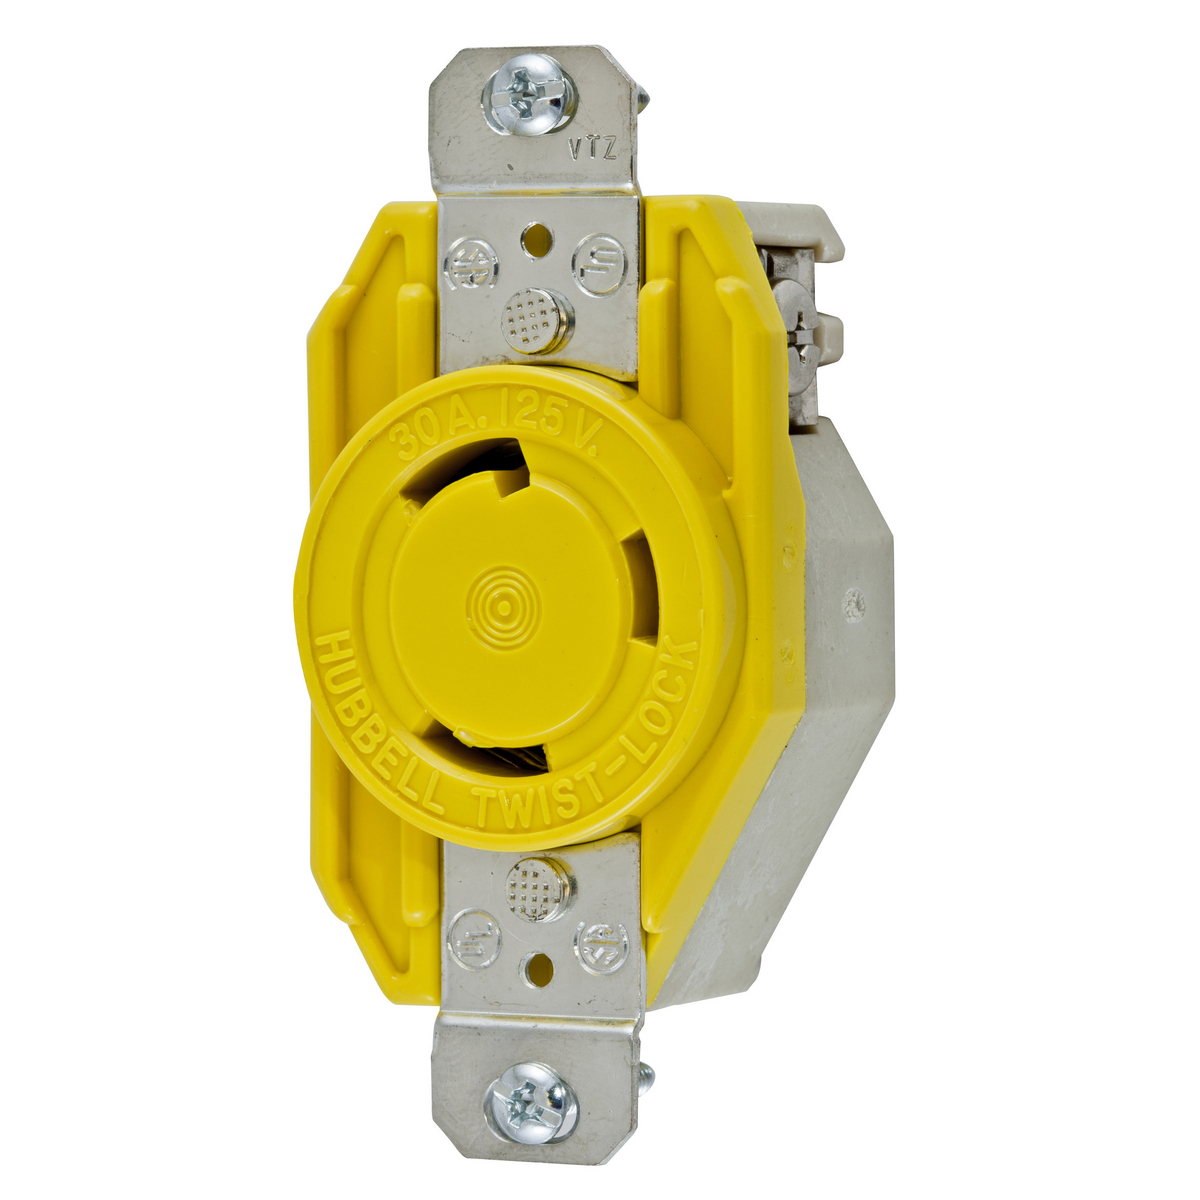 Hubbell HBL26CM10 30 Amp 125 Volt 2-Pole 3-Wire NEMA L5-30R Yellow Locking Receptacle